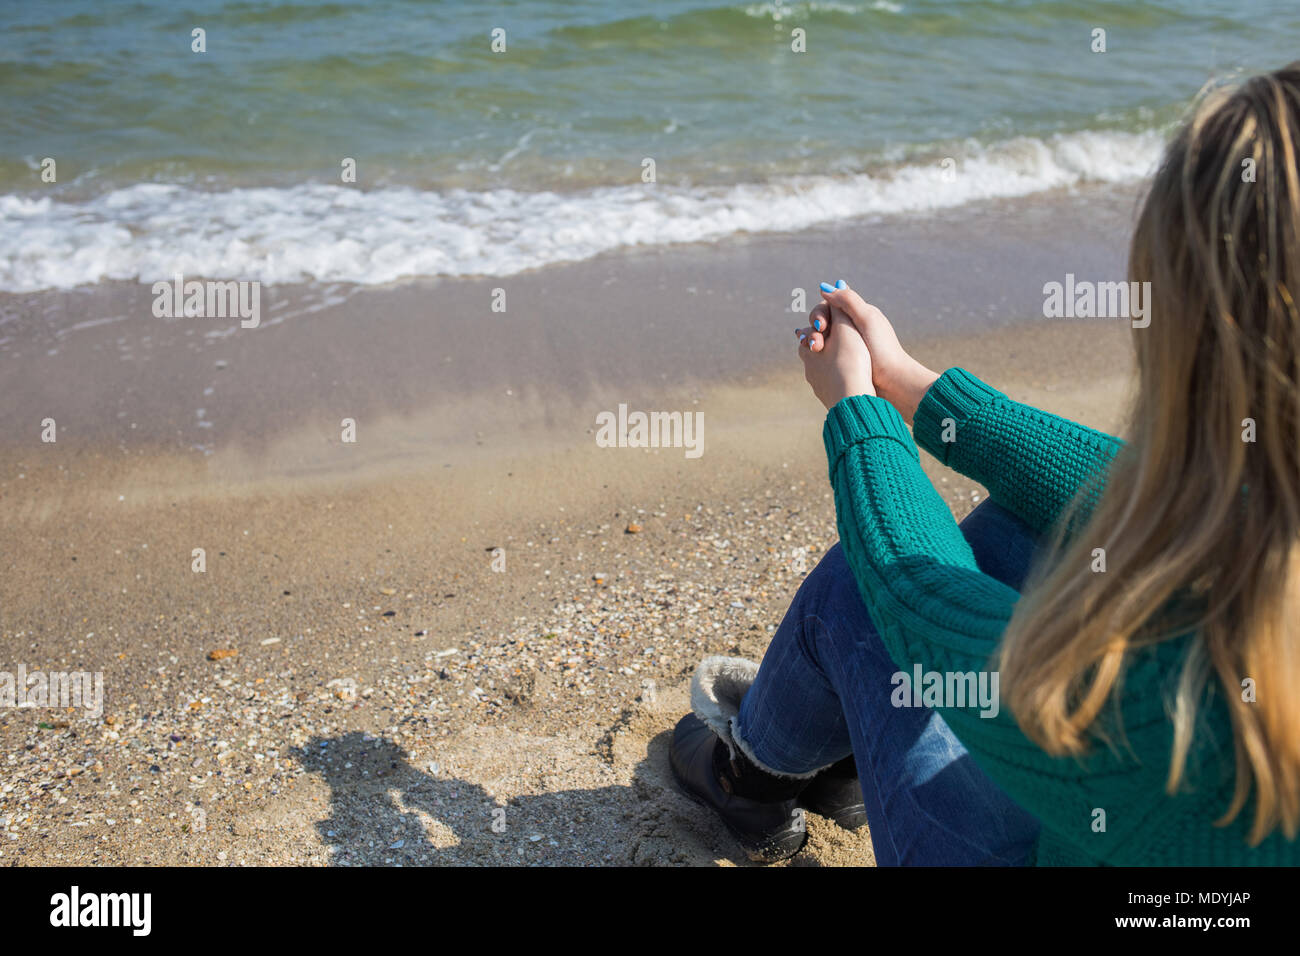 Young white woman relaxing outside on sunny sandy beach enjoying blue sea water. Horizontal color photography. - Stock Image